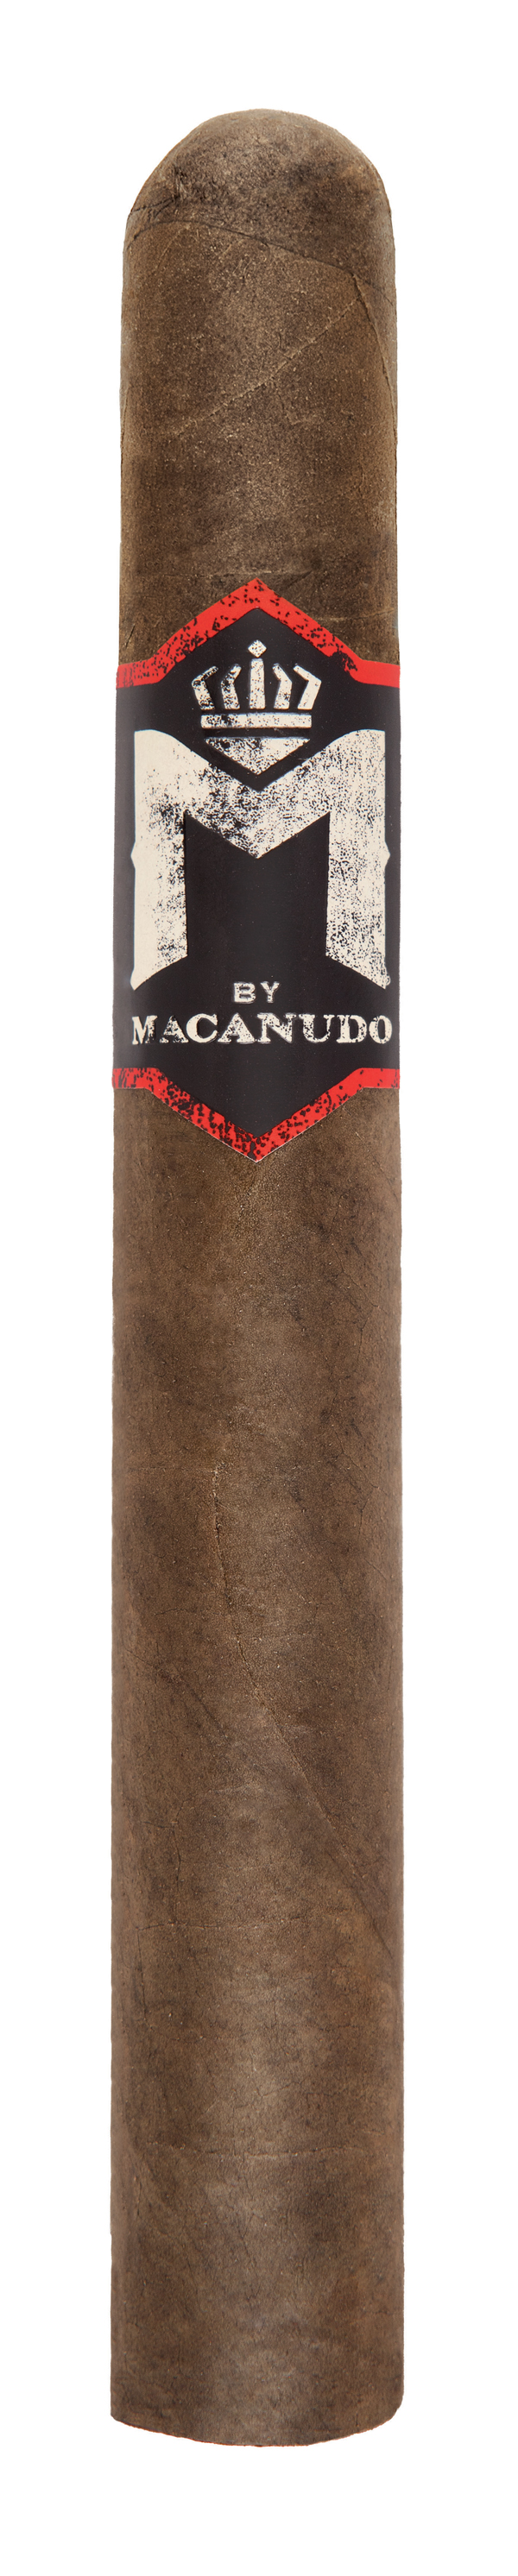 General Cigar Releases Coffee Flavor-Infused Macanudo M